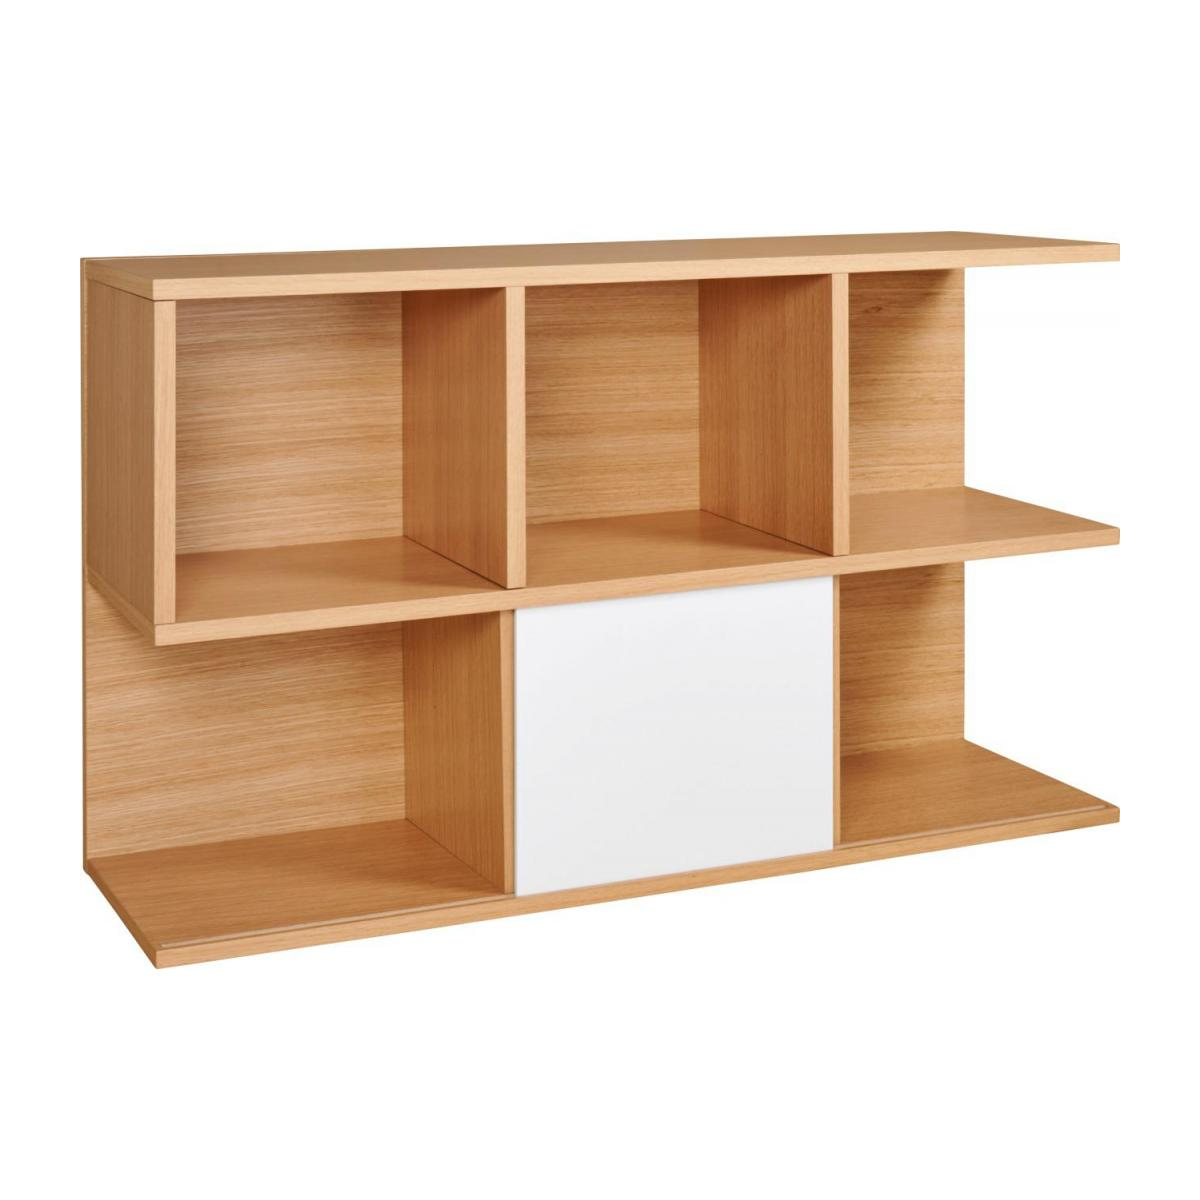 Low bookcase, oak and white n°3